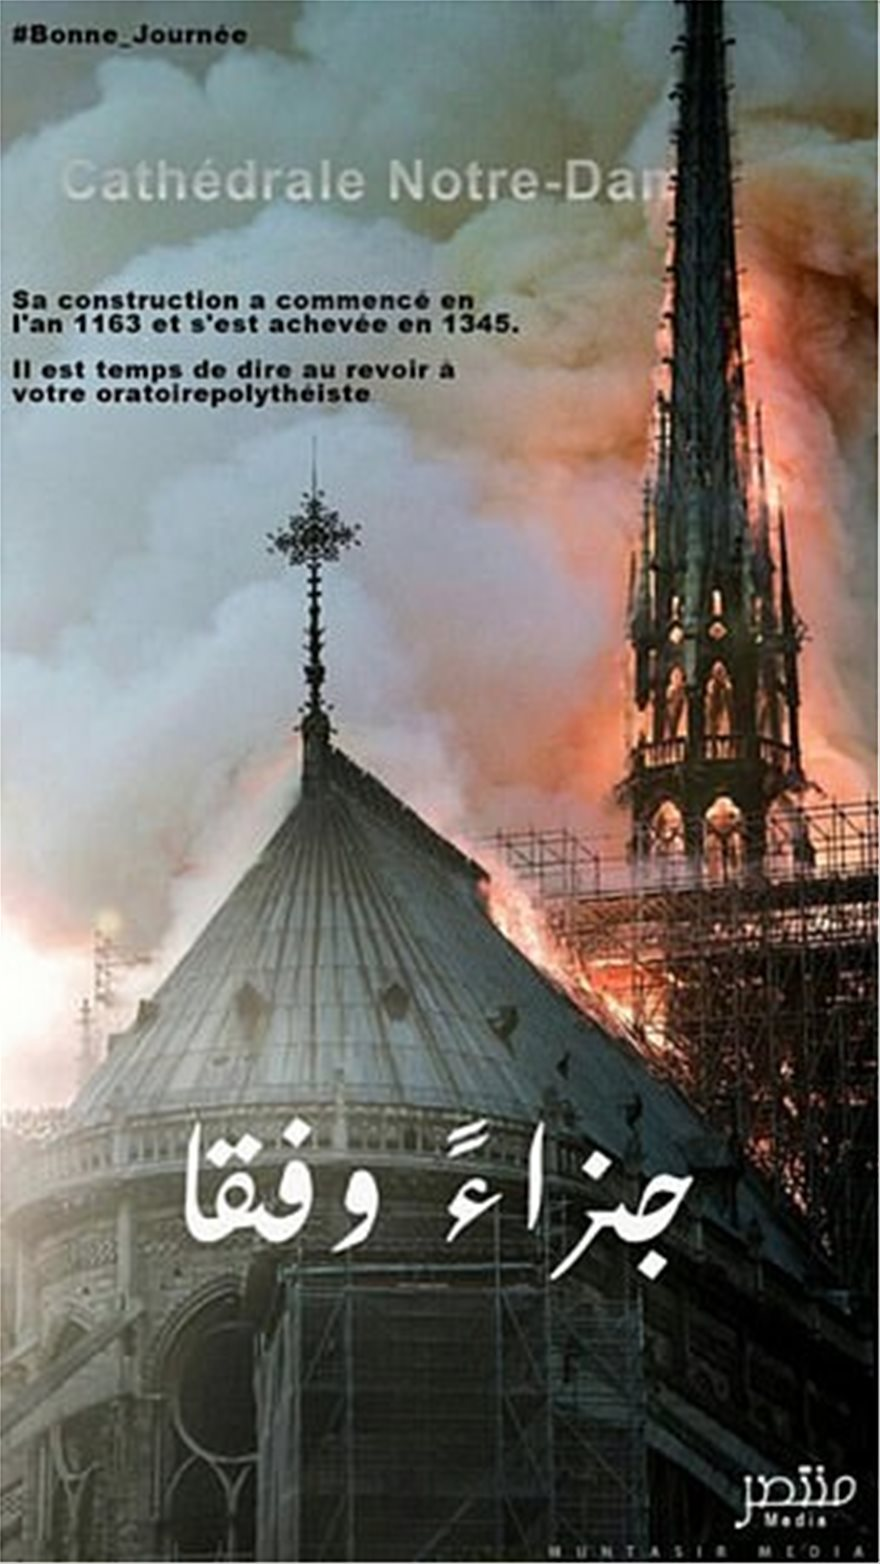 ISIS_Notre_Dame